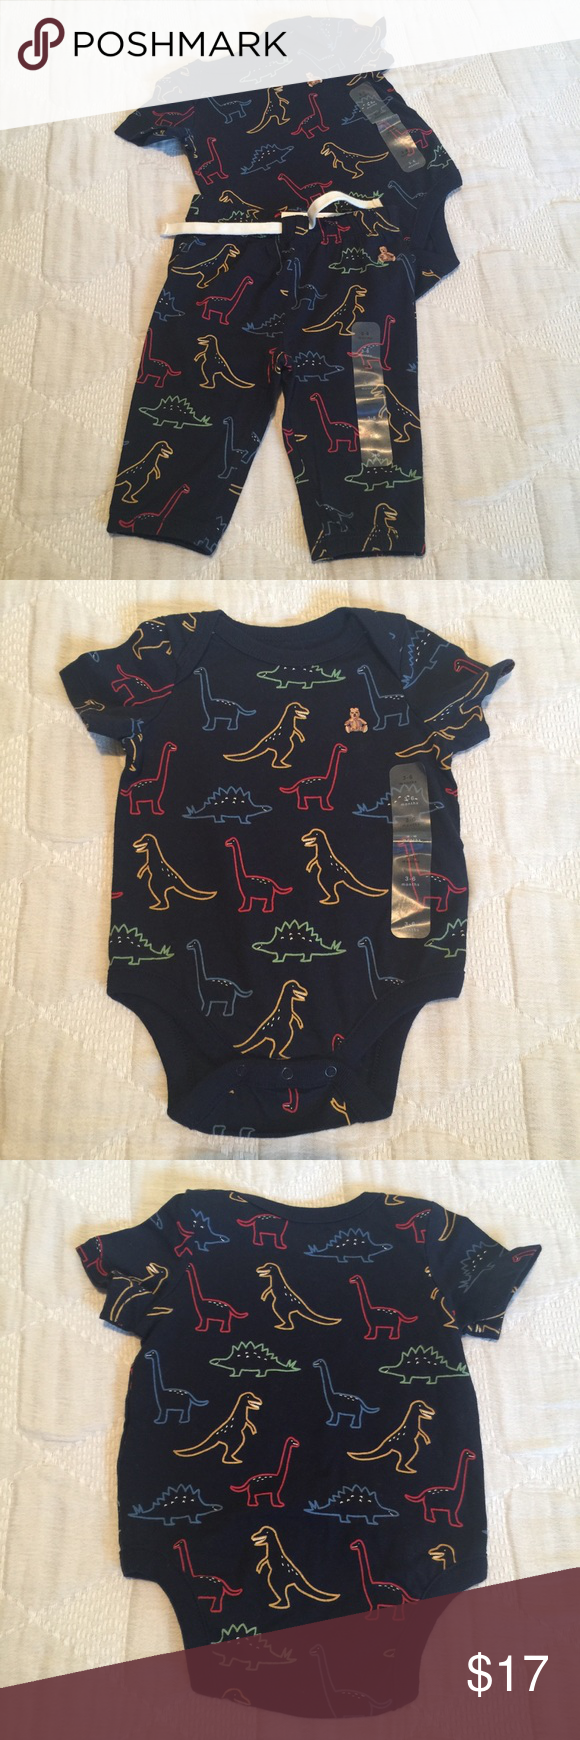 189a9d20f Baby Gap Dinosaur Onesie & Pant Set Cute Matching set, short sleeved onesie  and pants. Navy blue background with multi color dinosaurs. GAP Matching  Sets